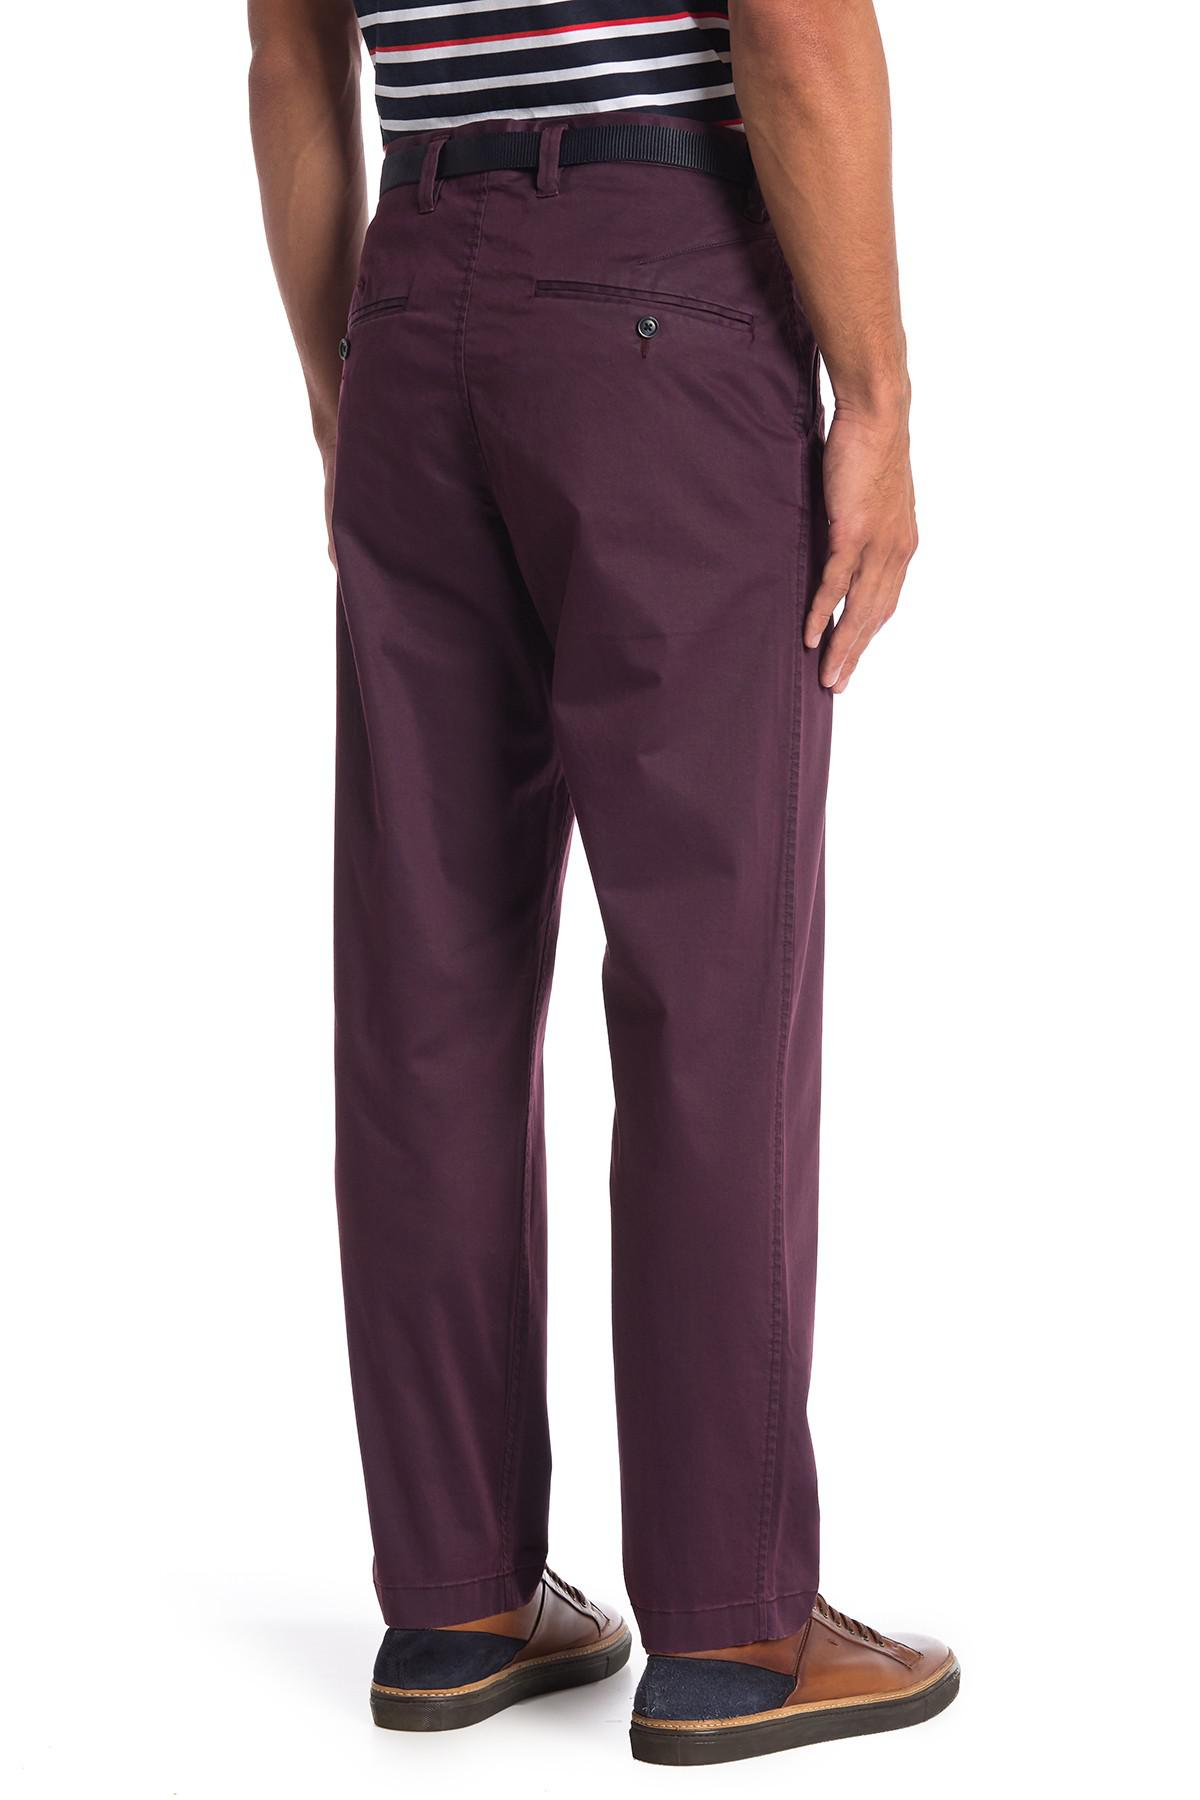 b505347225 Perry Ellis - Purple Dyed Cargo Pants for Men - Lyst. View fullscreen